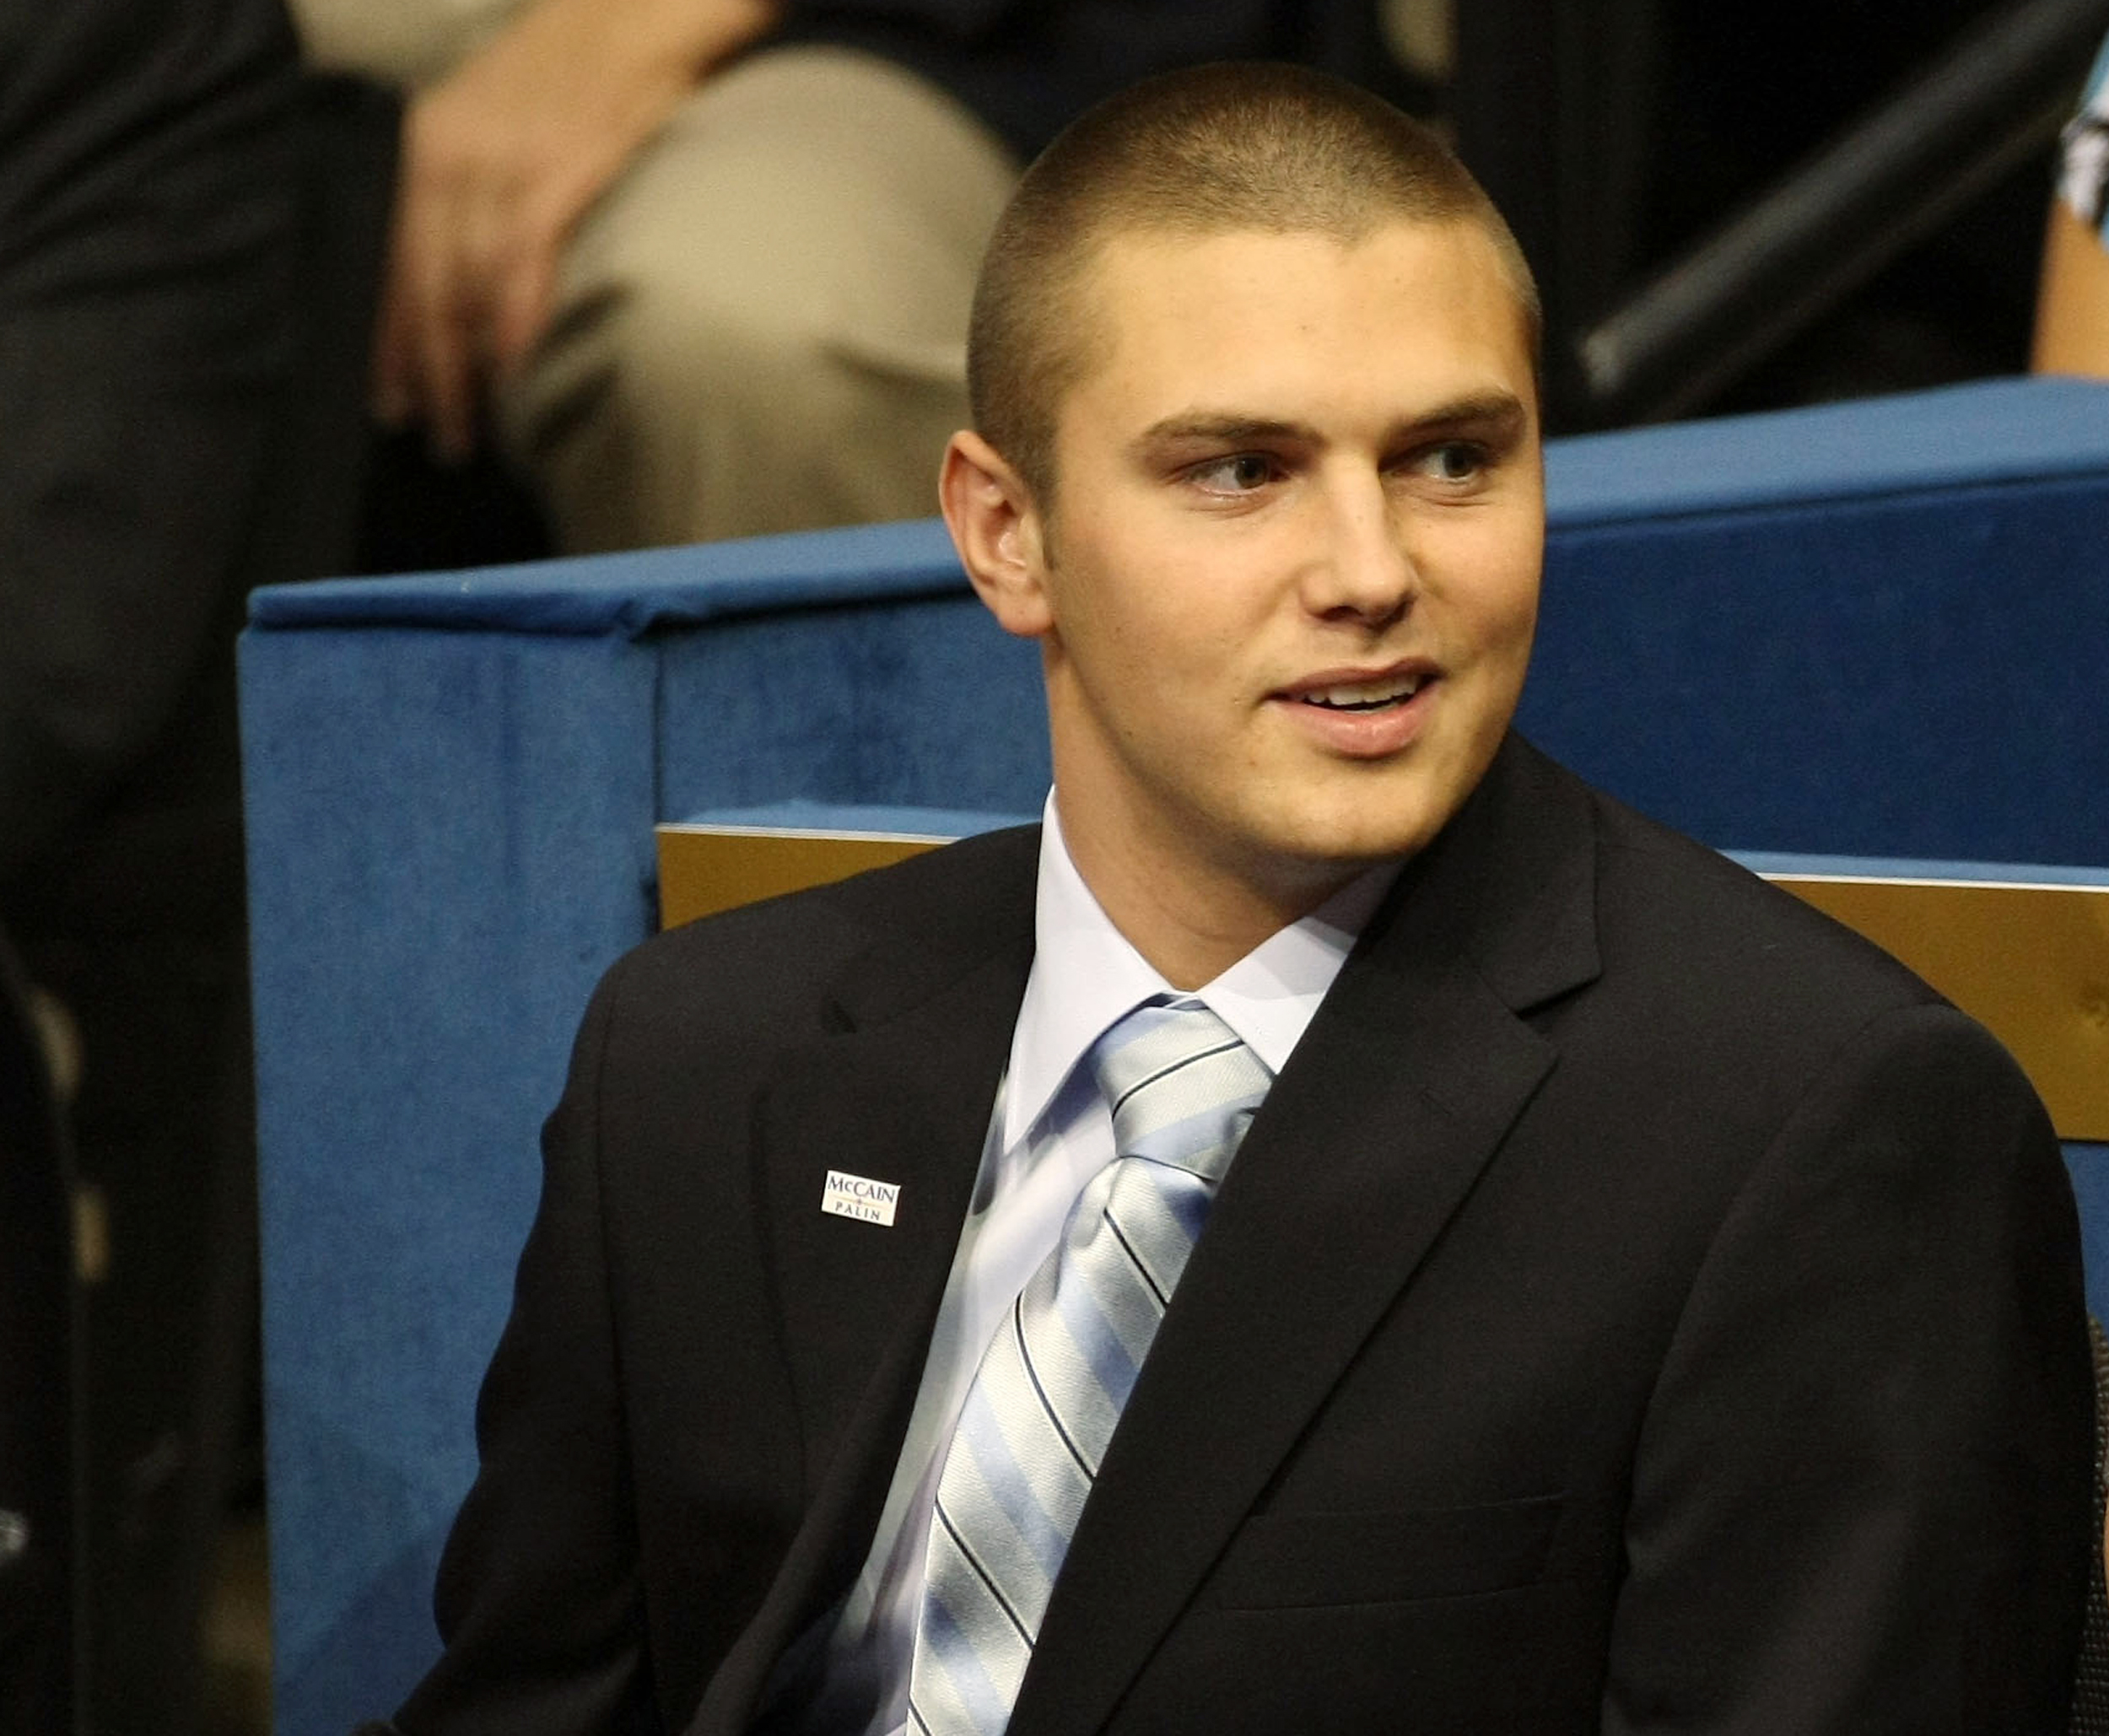 Track palin oldest son of sarah palin called officers peasants track palin oldest son of sarah palin called officers peasants before arrest altavistaventures Images